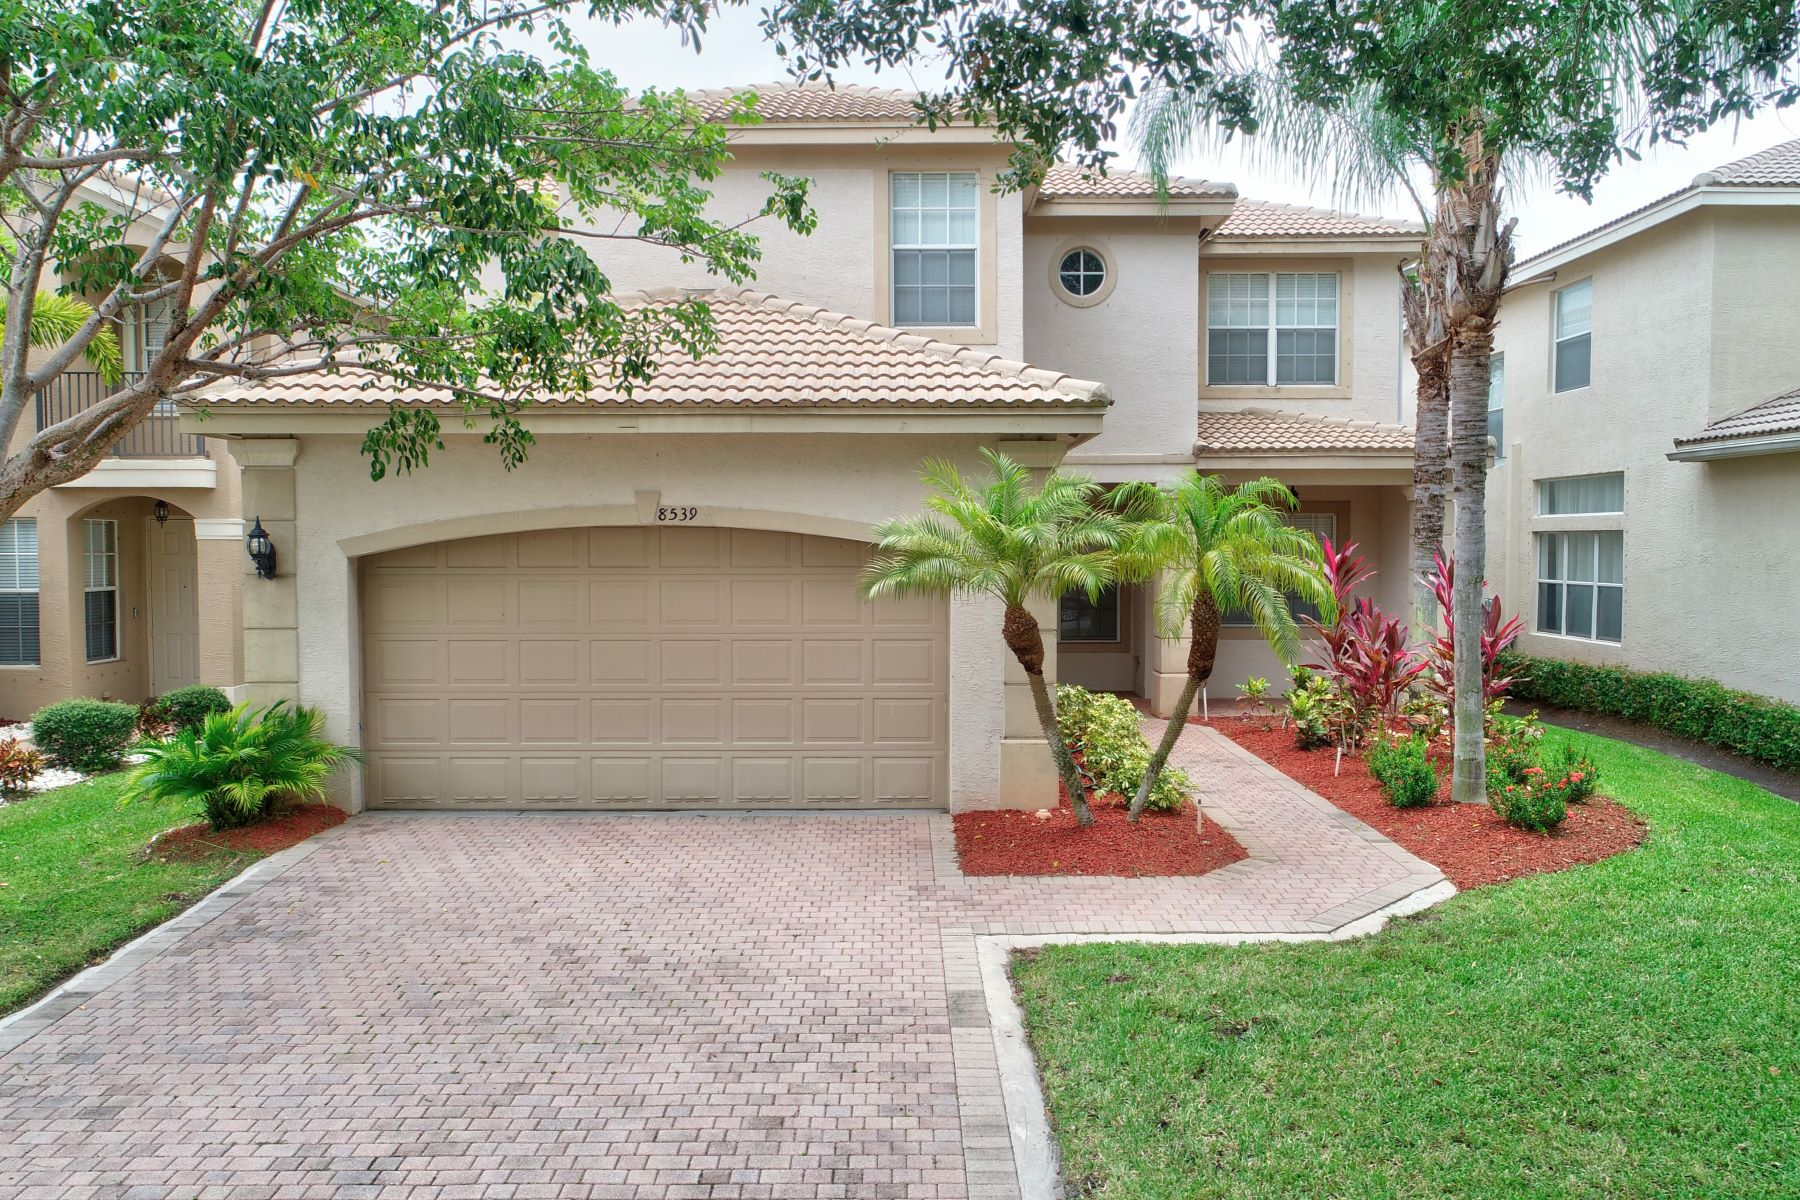 Single Family Homes para Venda às 8539 Woodgrove Harbor Lane Boynton Beach, Florida 33473 Estados Unidos